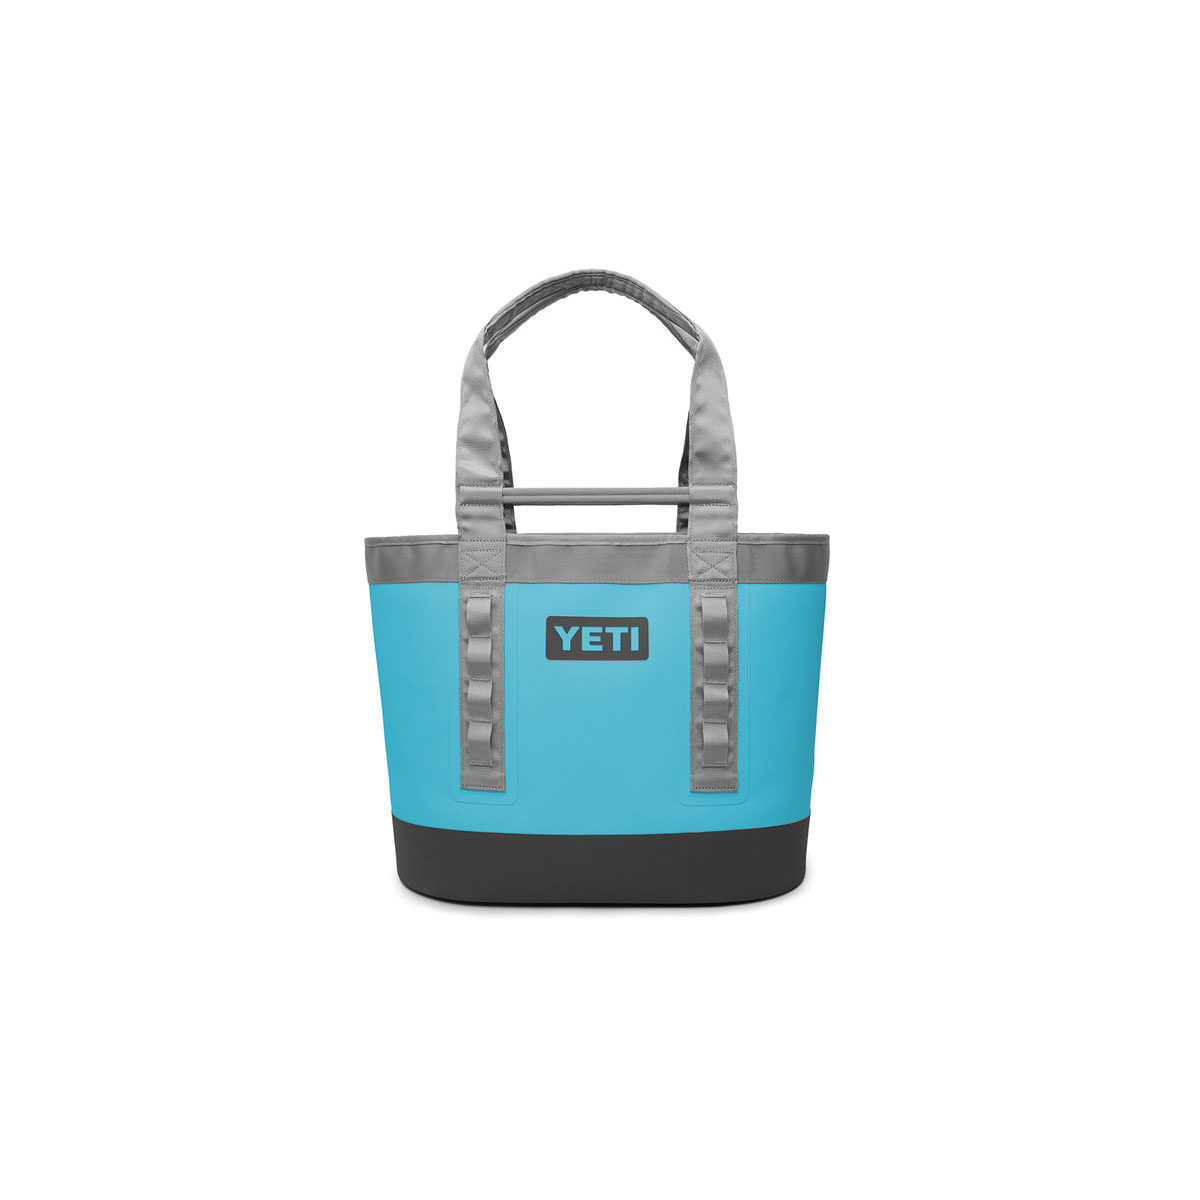 Picture of YETI Camino 35 26010000037 Tote Bag, Reef Blue, 9-7/8 in L, 18-1/8 in W, 14-7/8 in H